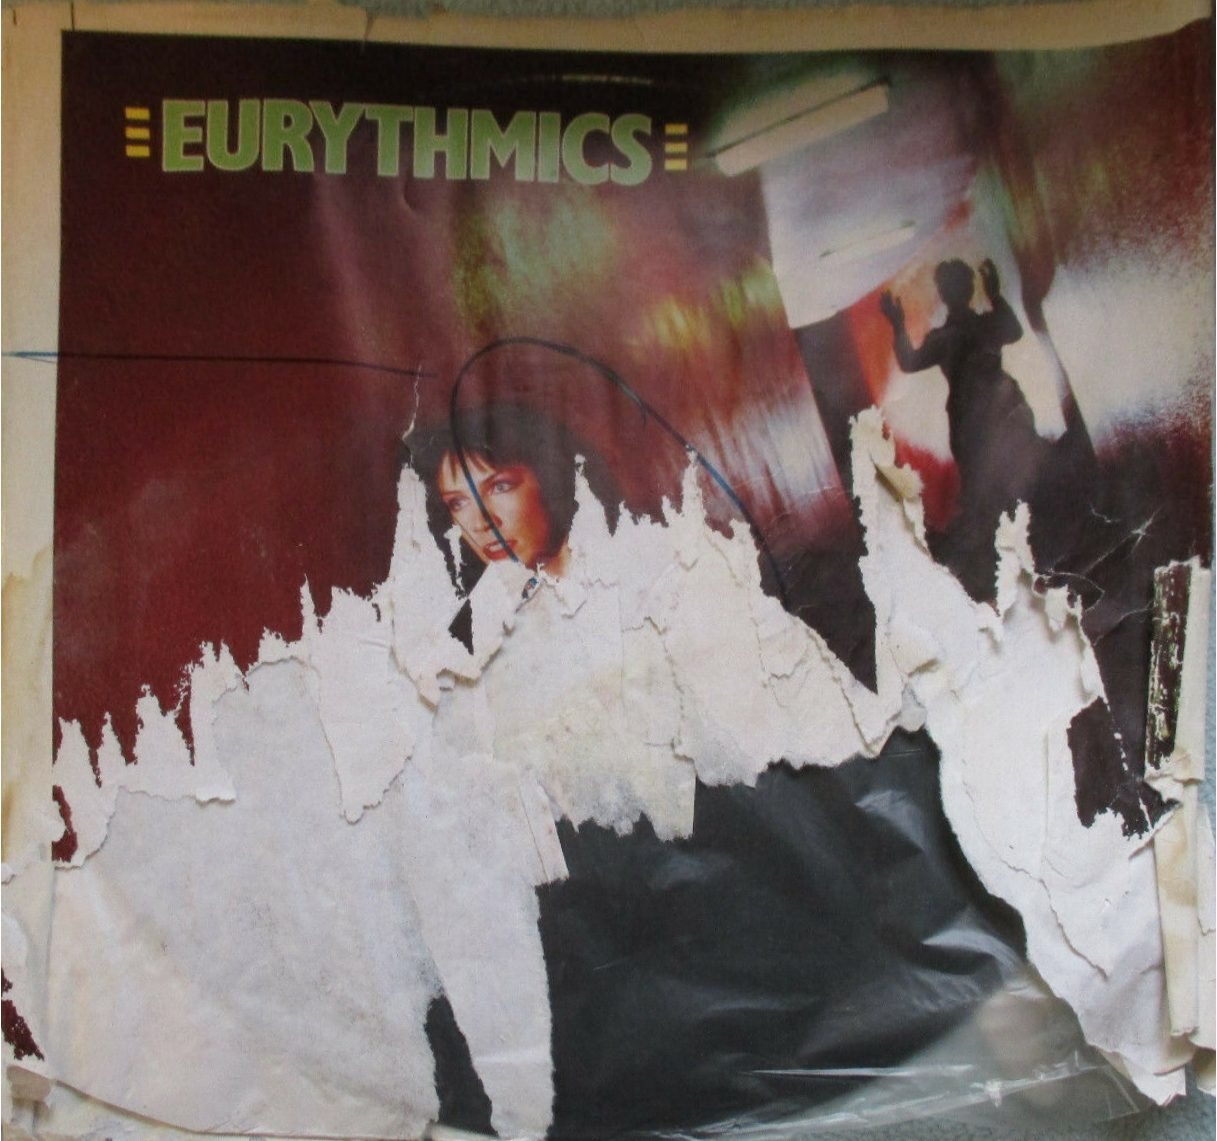 """6692 - Eurythmics - This Is The House - The UK - Promo 12"""" Single - SQUINK1"""